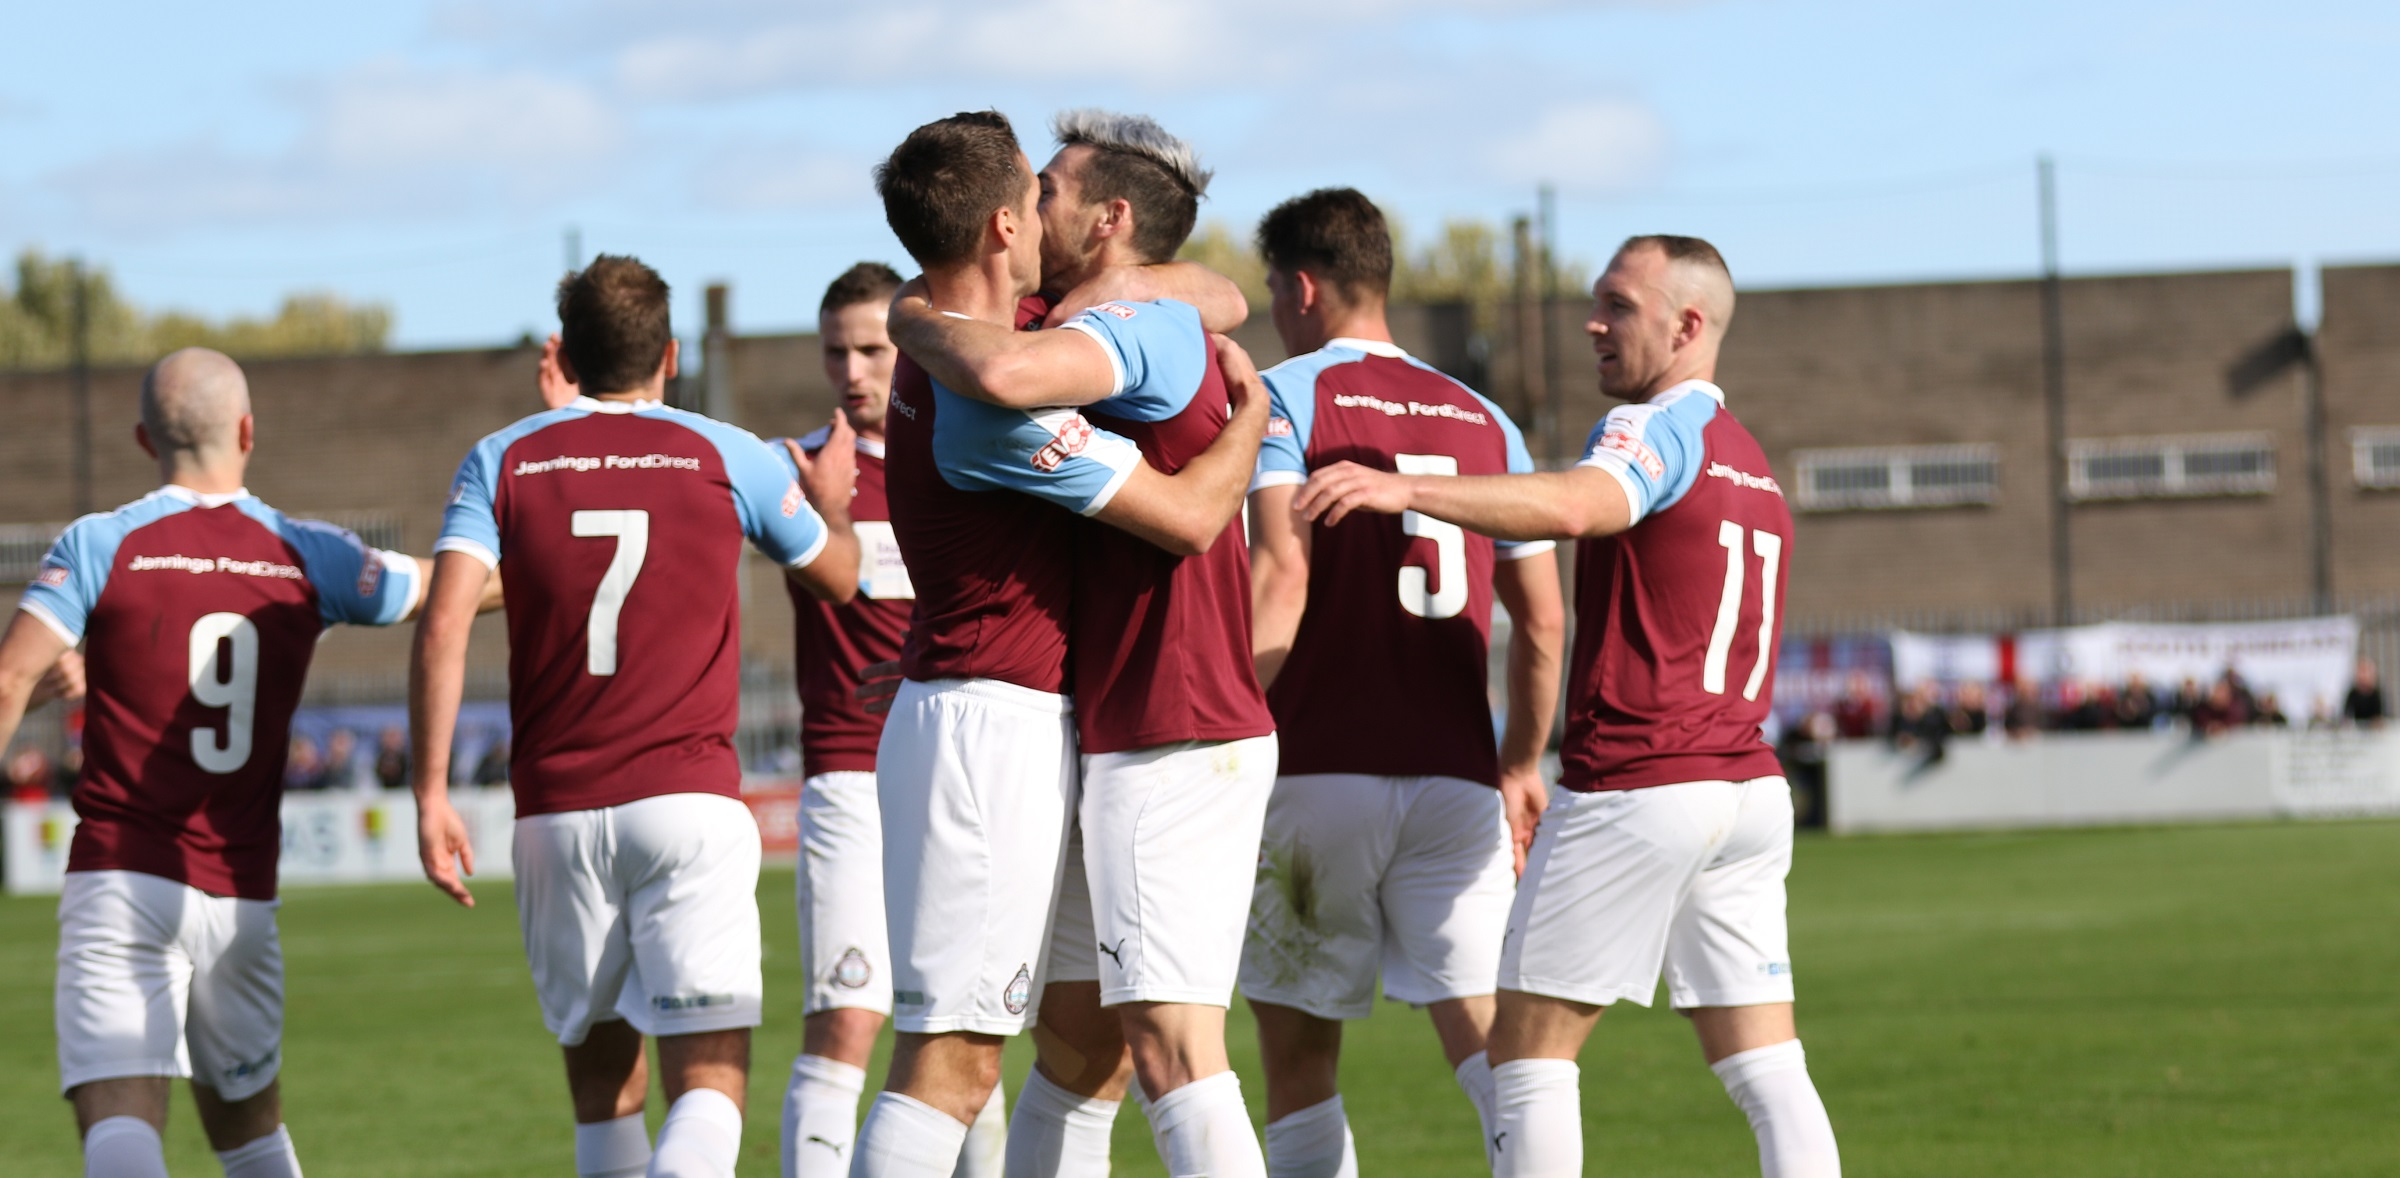 Match Preview: South Shields vs Grantham Town, Evo-Stik Premier Division